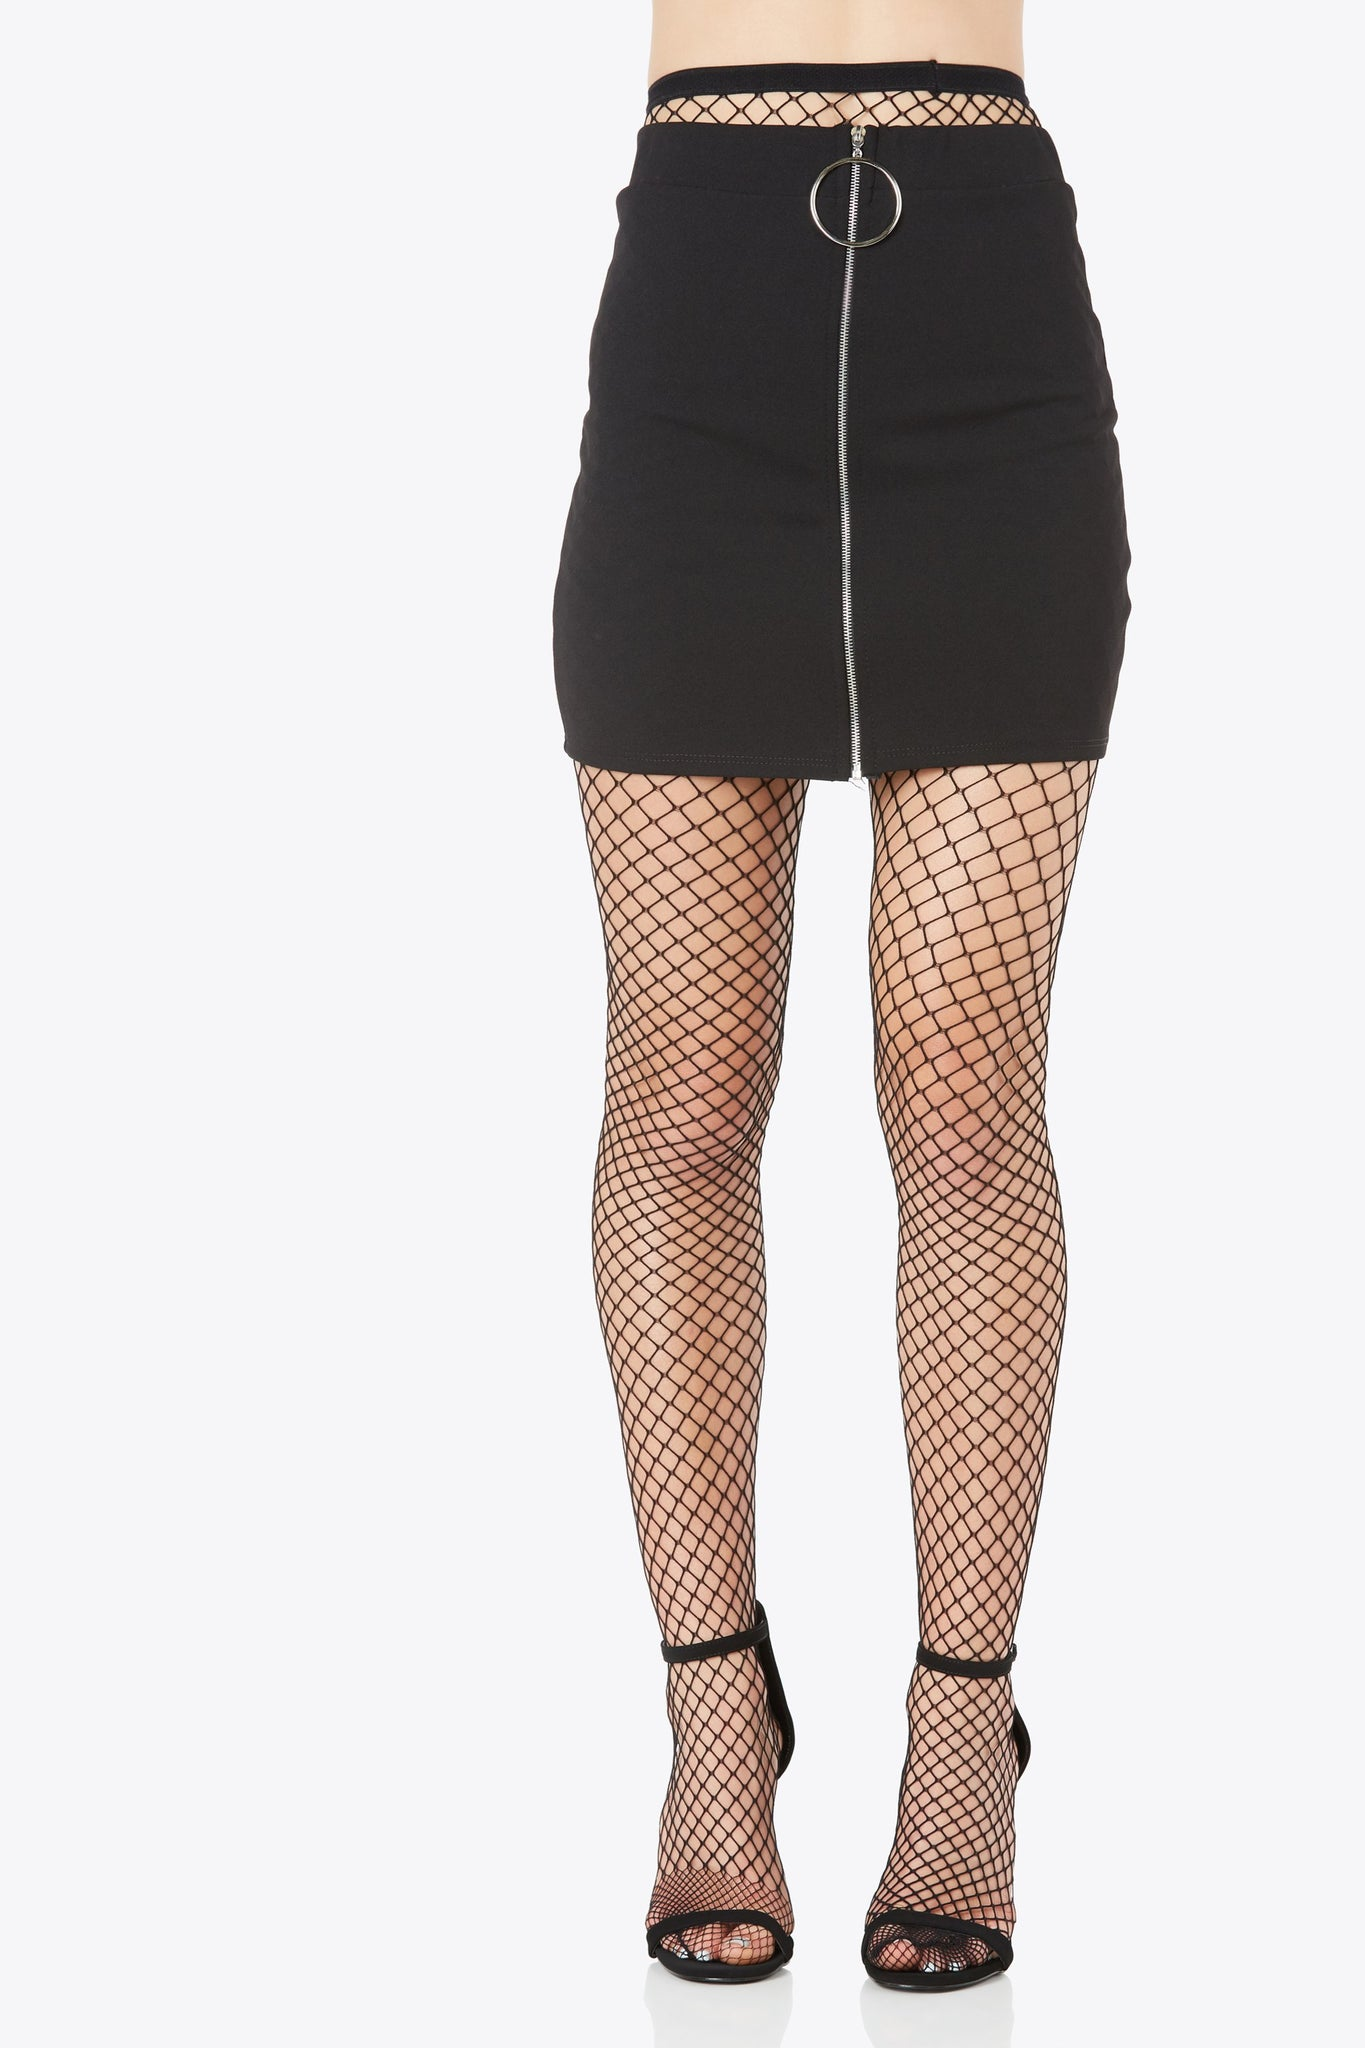 Chic high rise mini skirt with trendy front zip closure. Hoop detailing at zipper with straight hem finish.